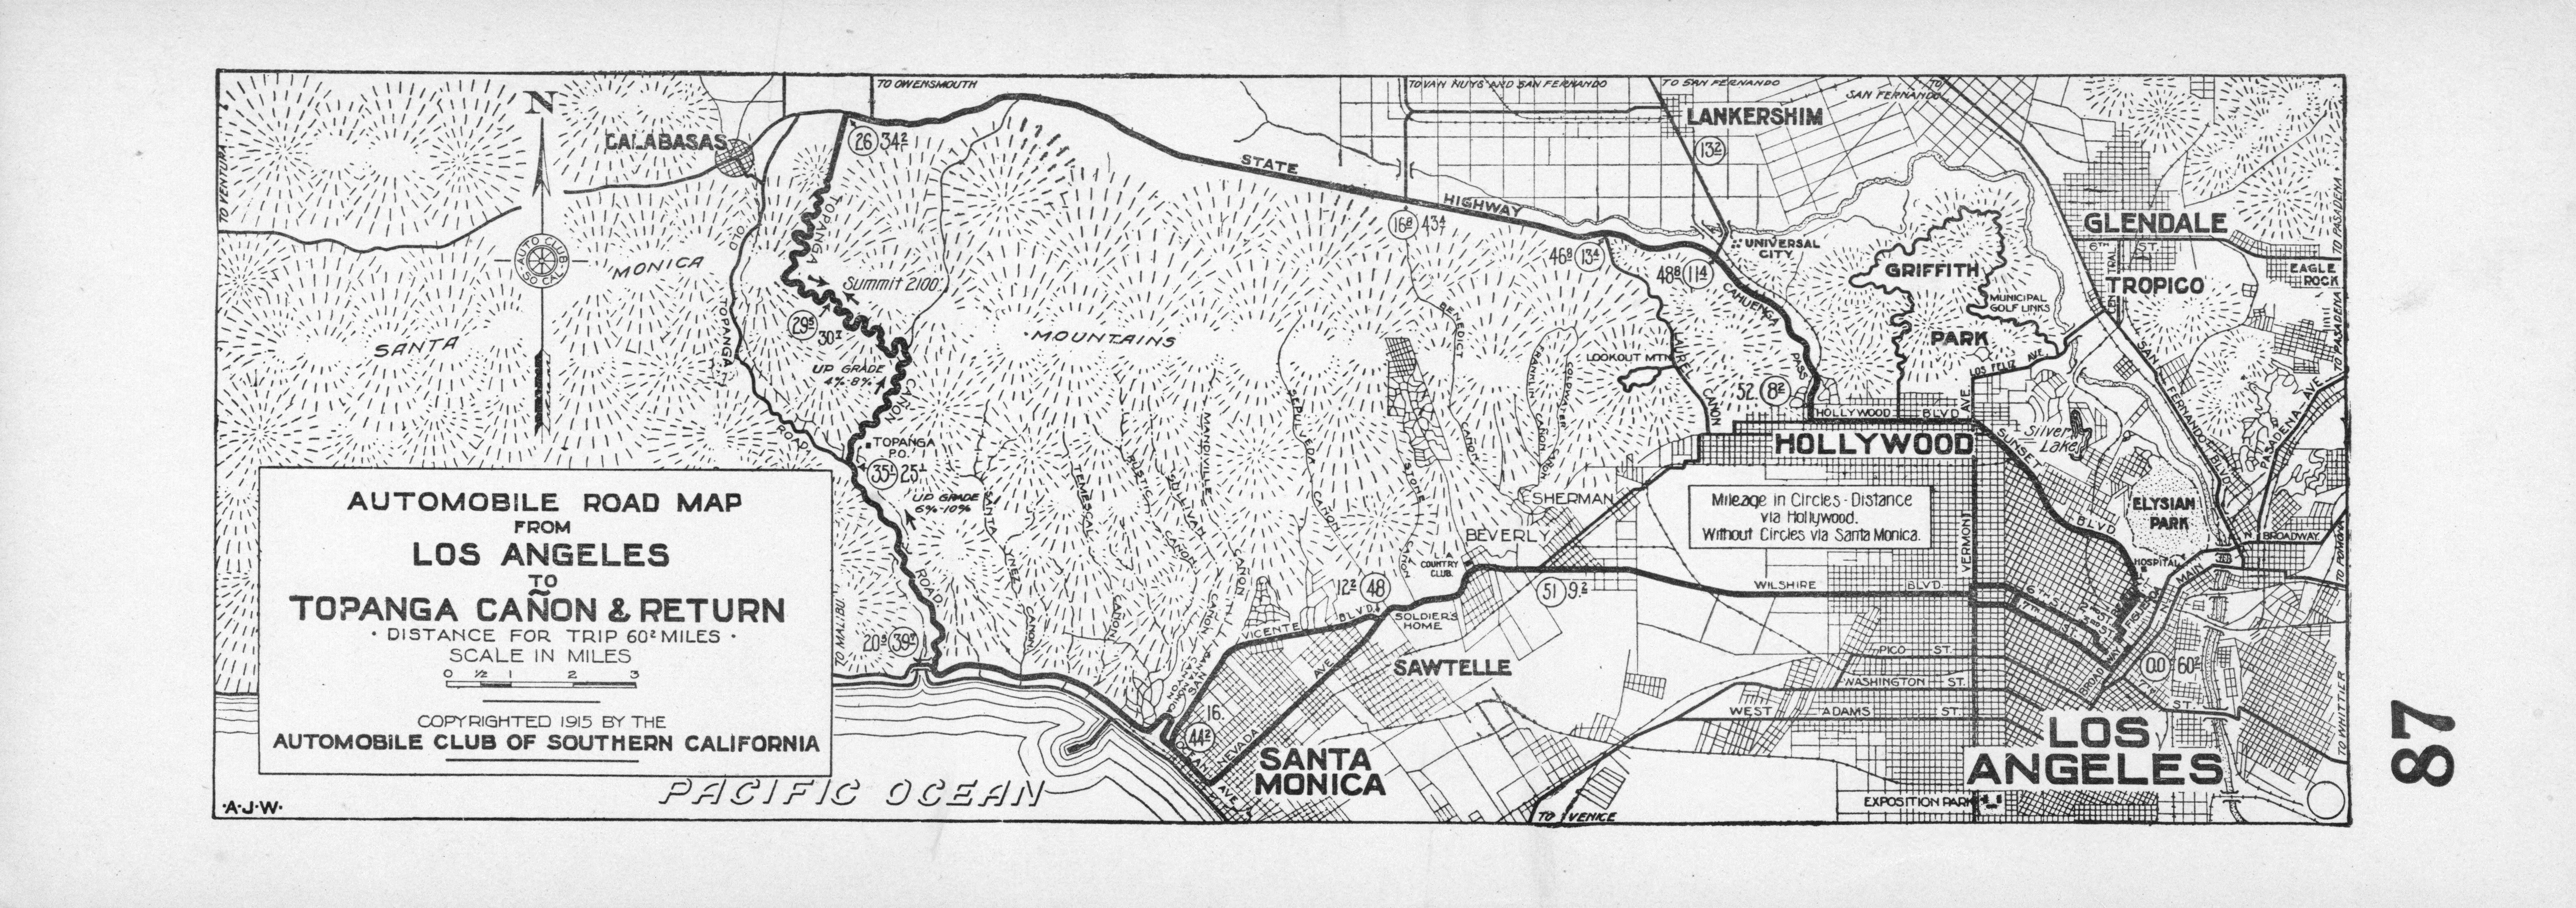 File:automobile Road Map From Los Angeles To Topanga Canon And - Aaa California Map